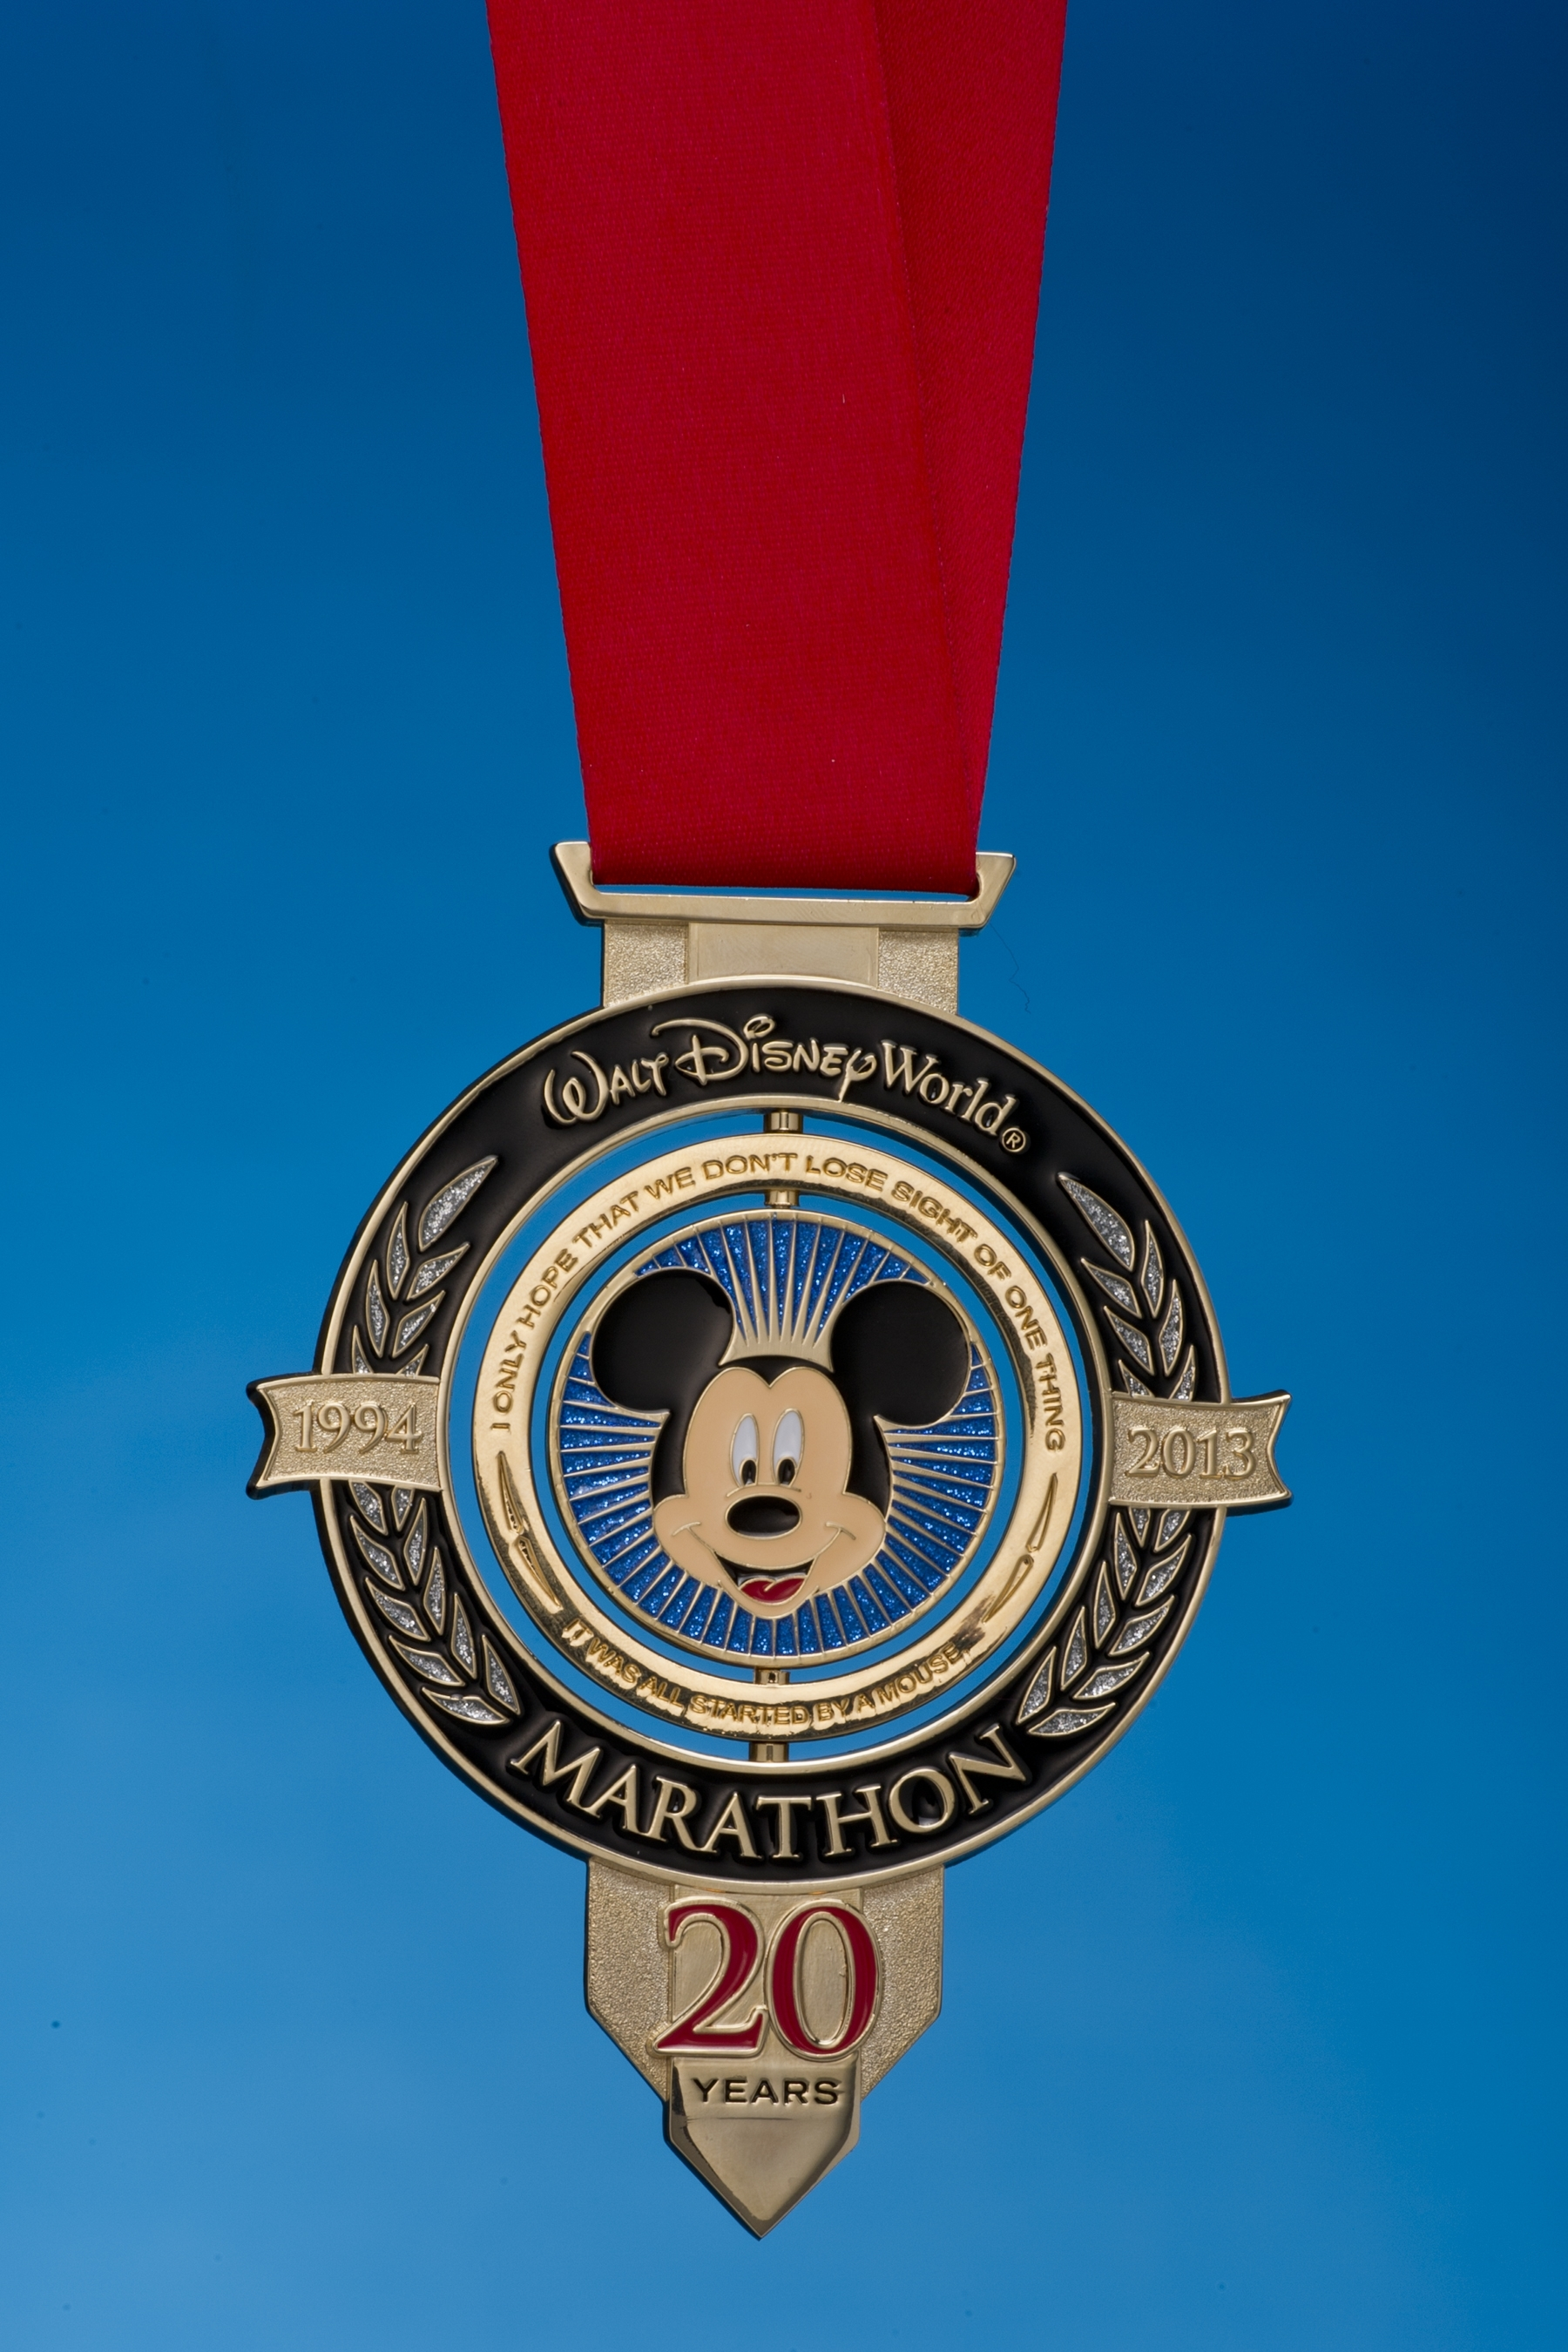 20th Anniversary Medal Walt Disney World Marathon 2013